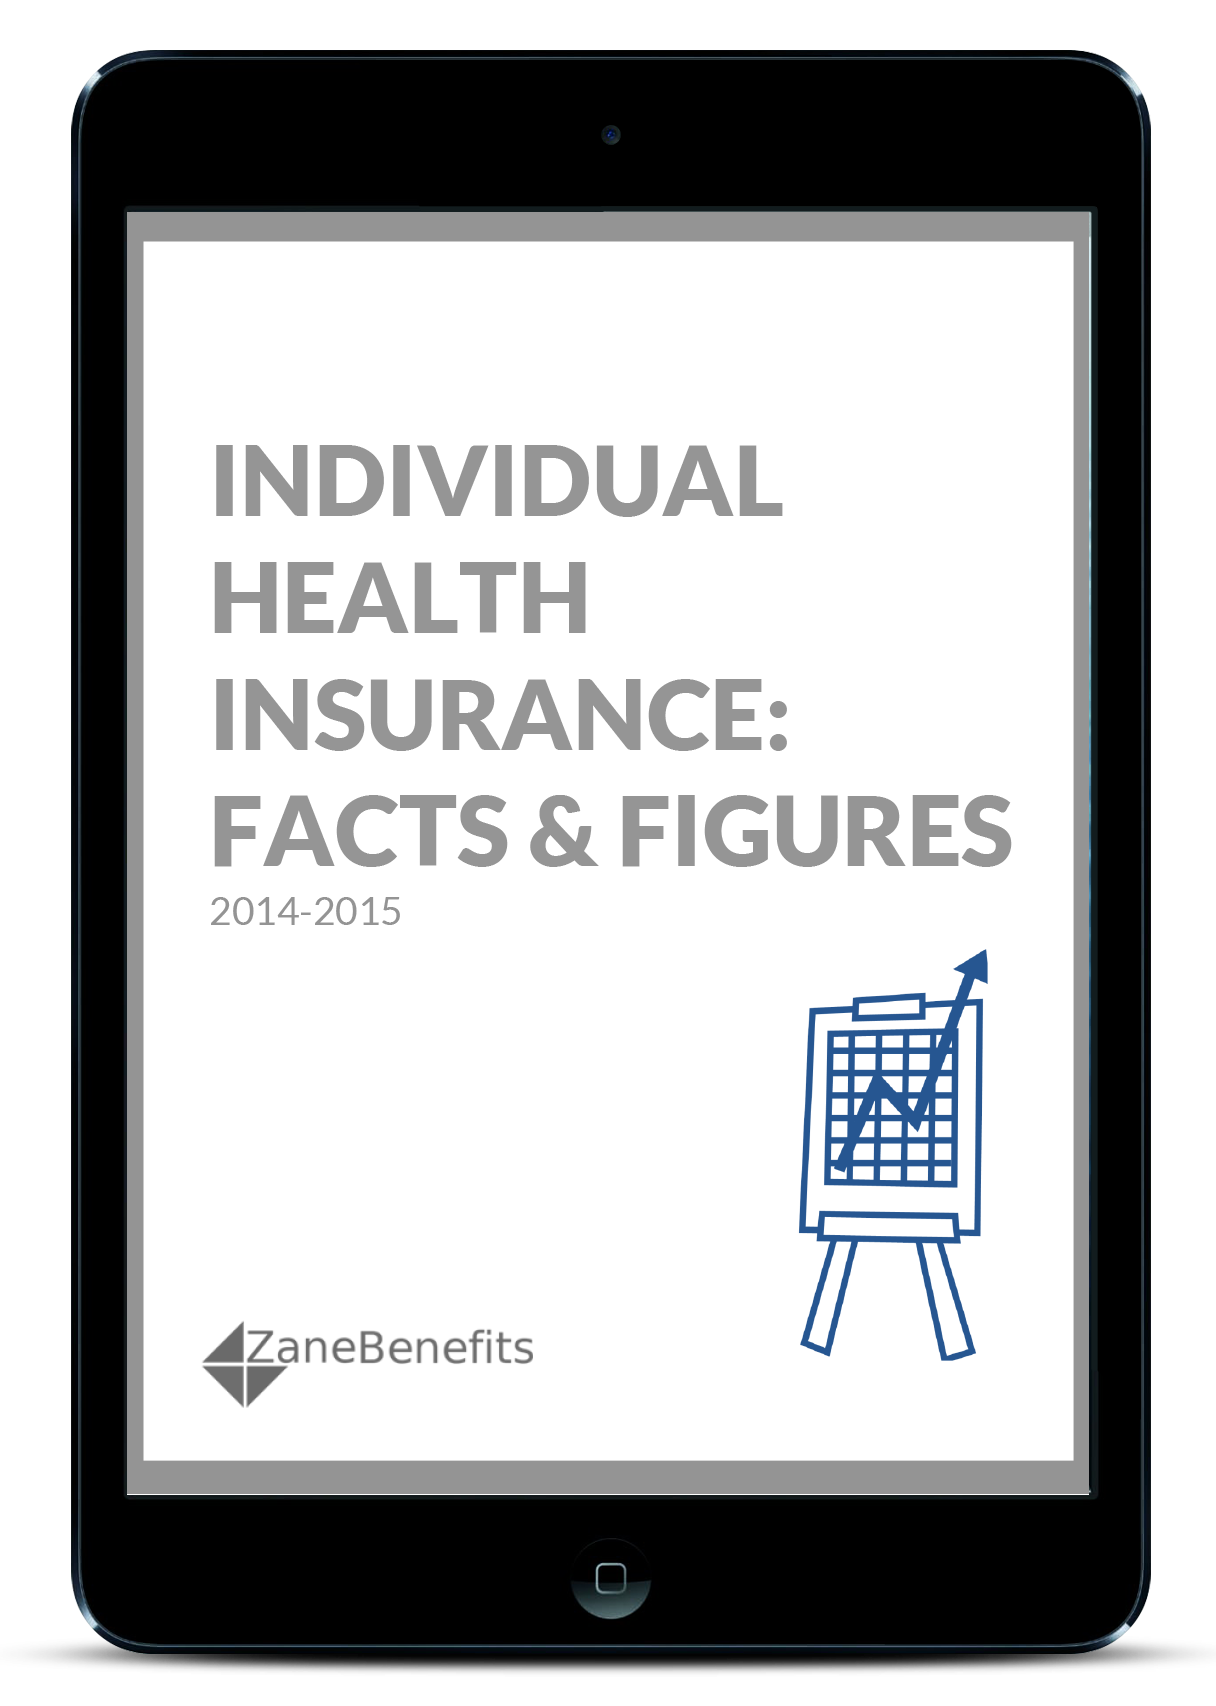 Individual Health Insurance: Facts and Figures